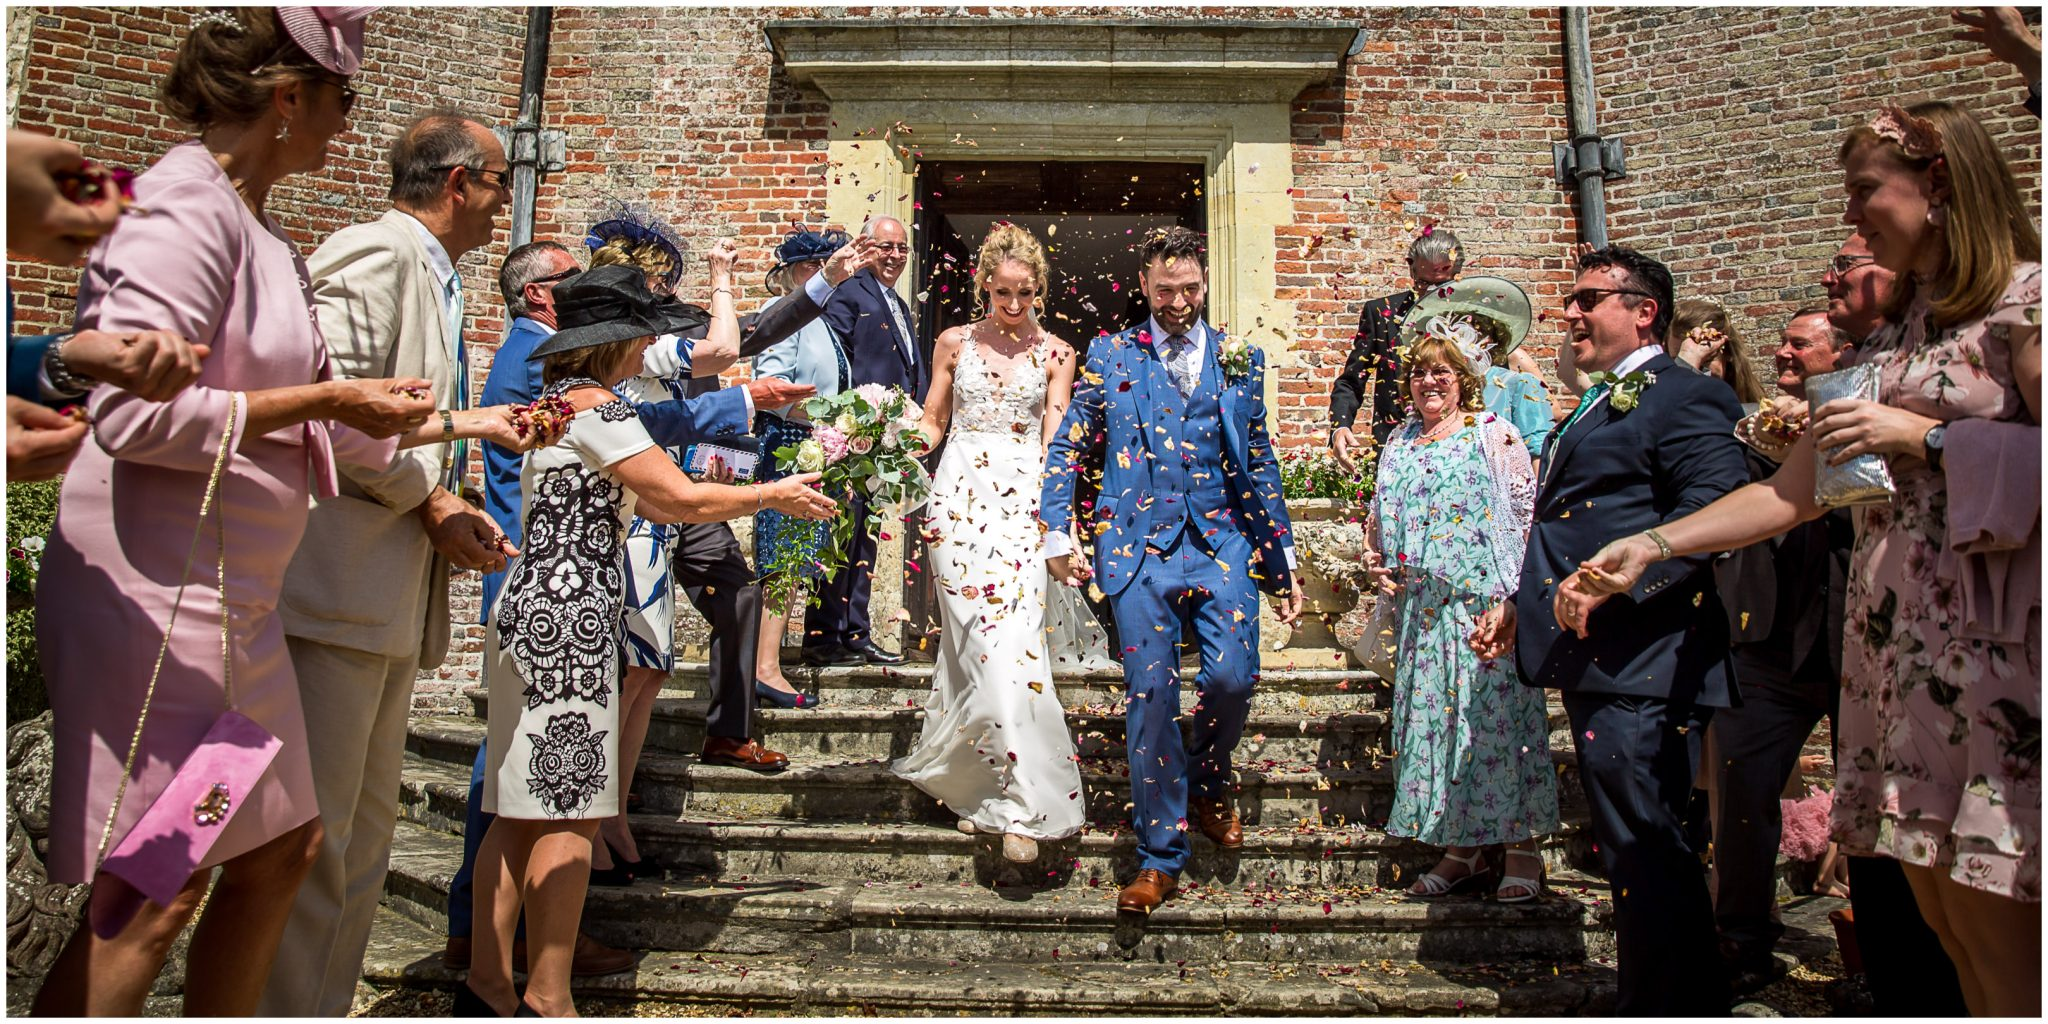 Bride and groom emerge from the house to a shower of confetti